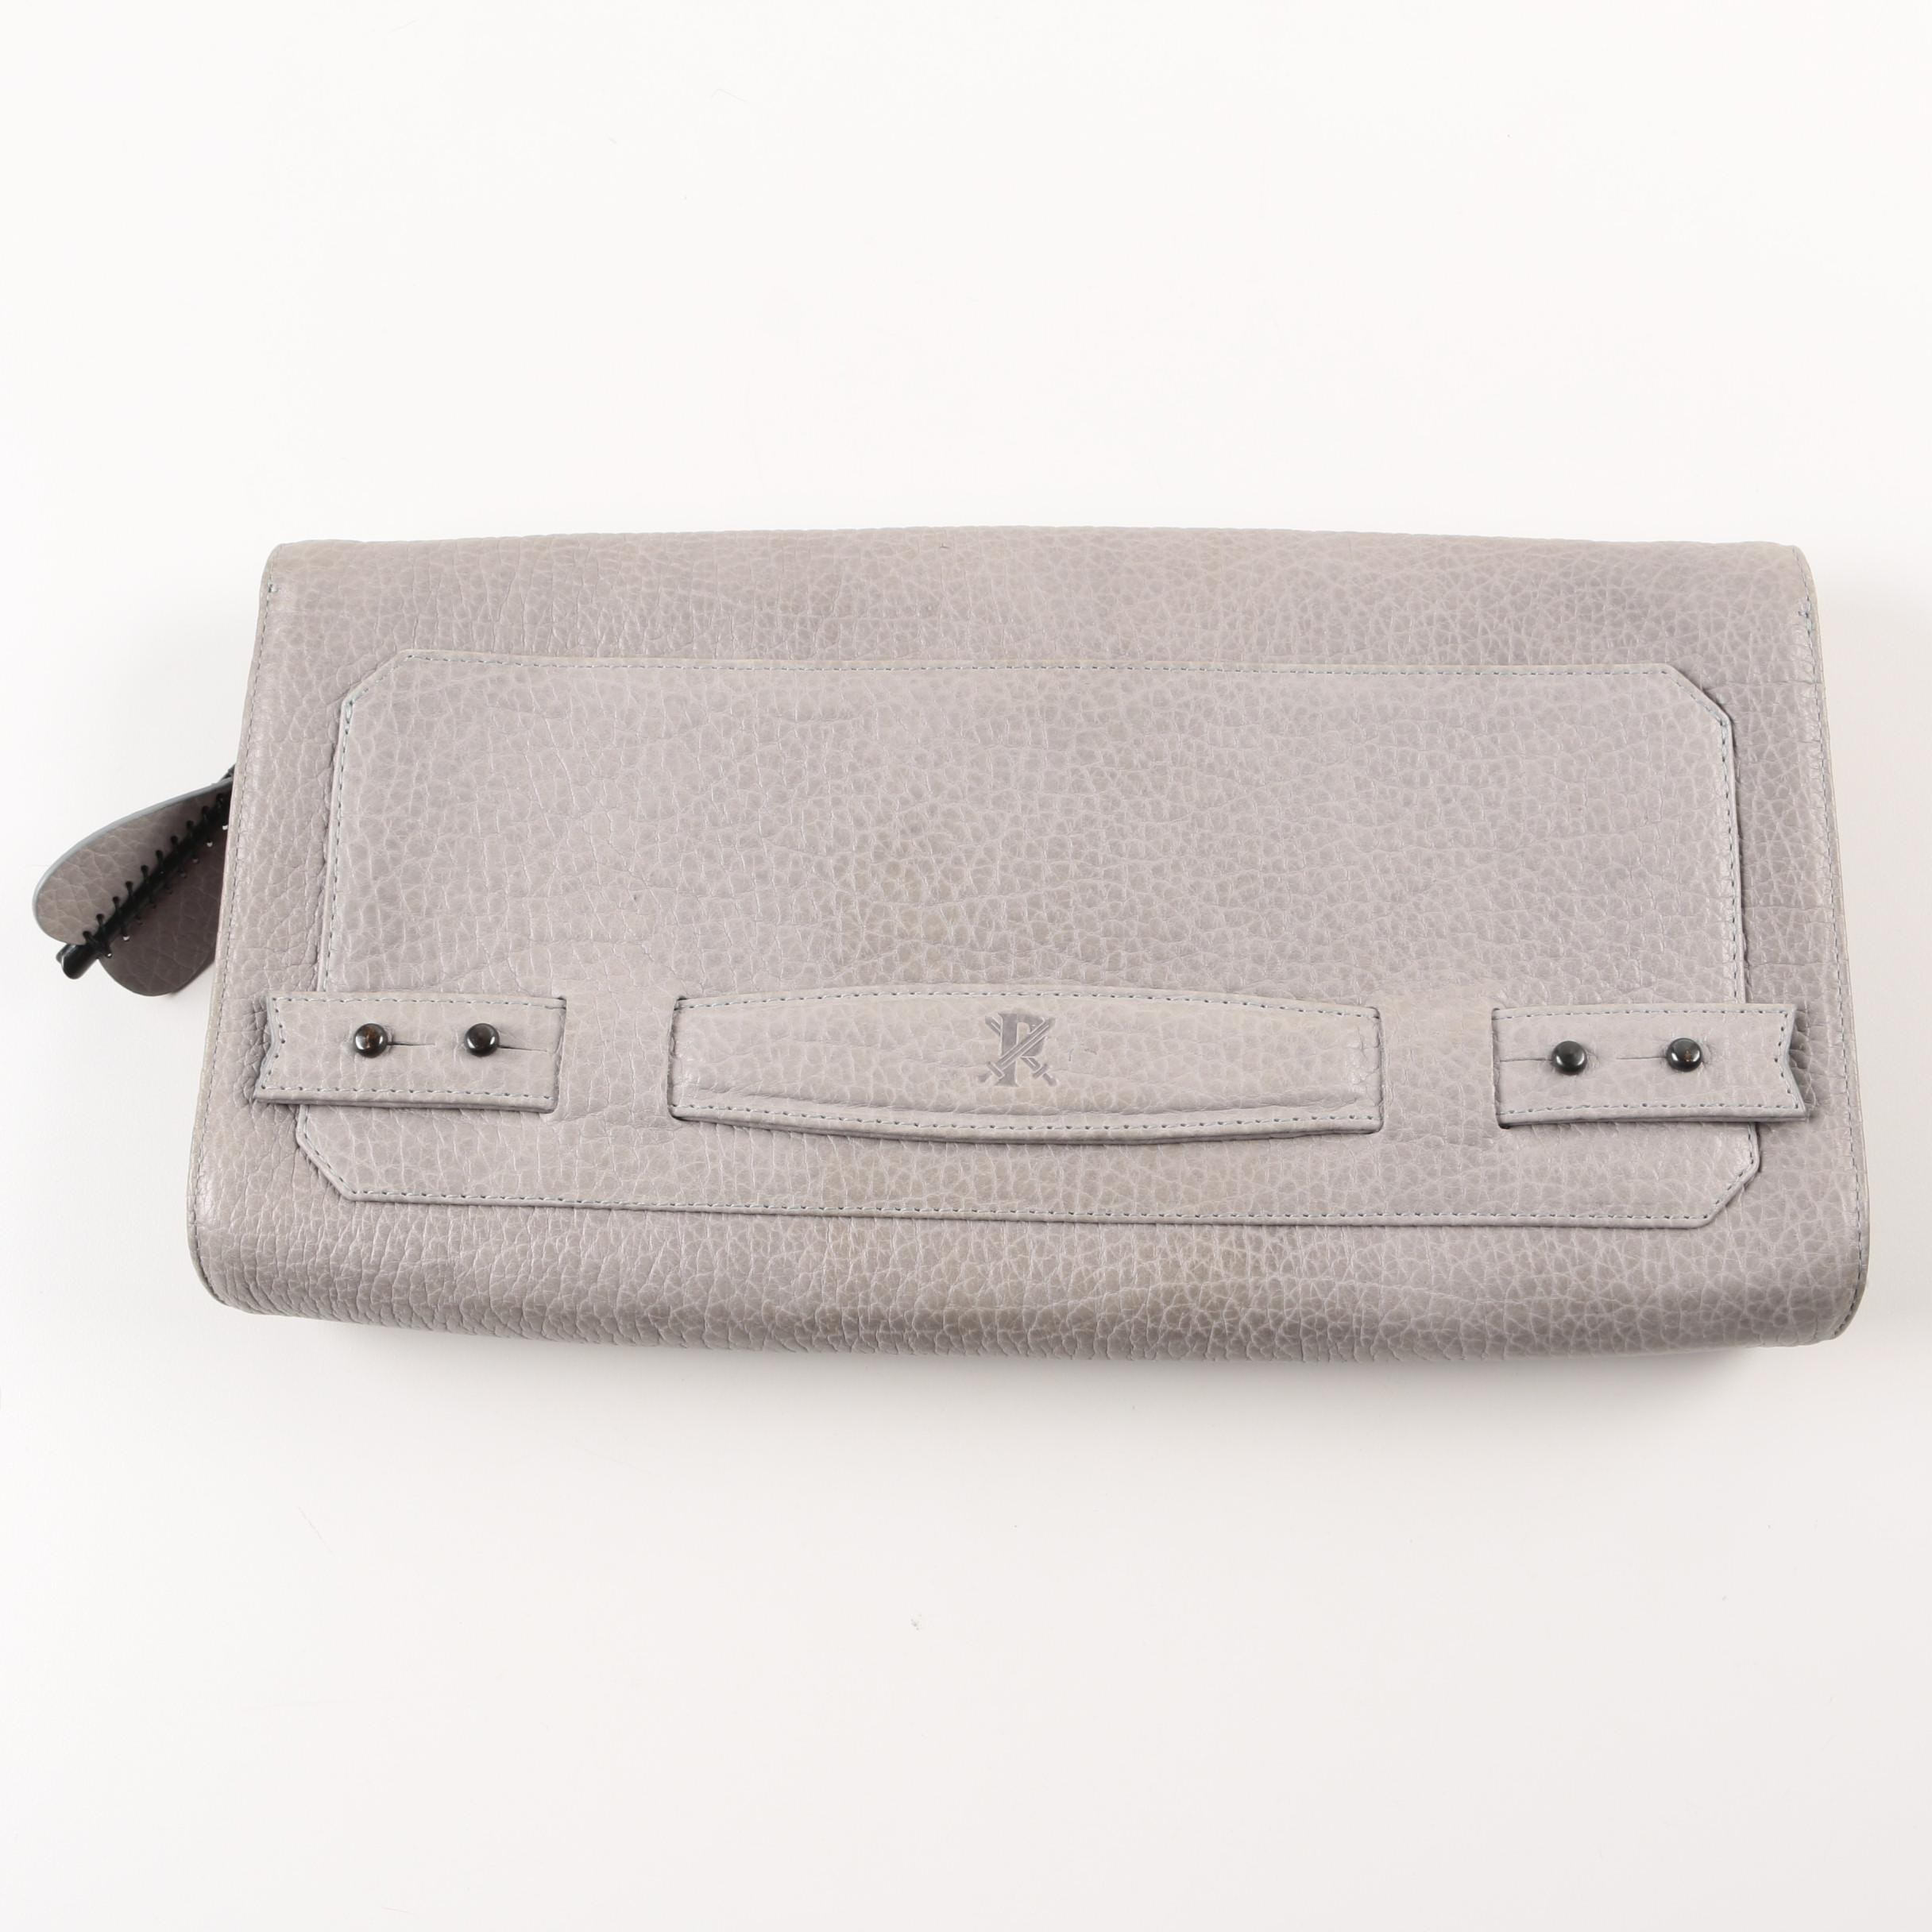 Parabellum Pebble Grained Leather Clutch